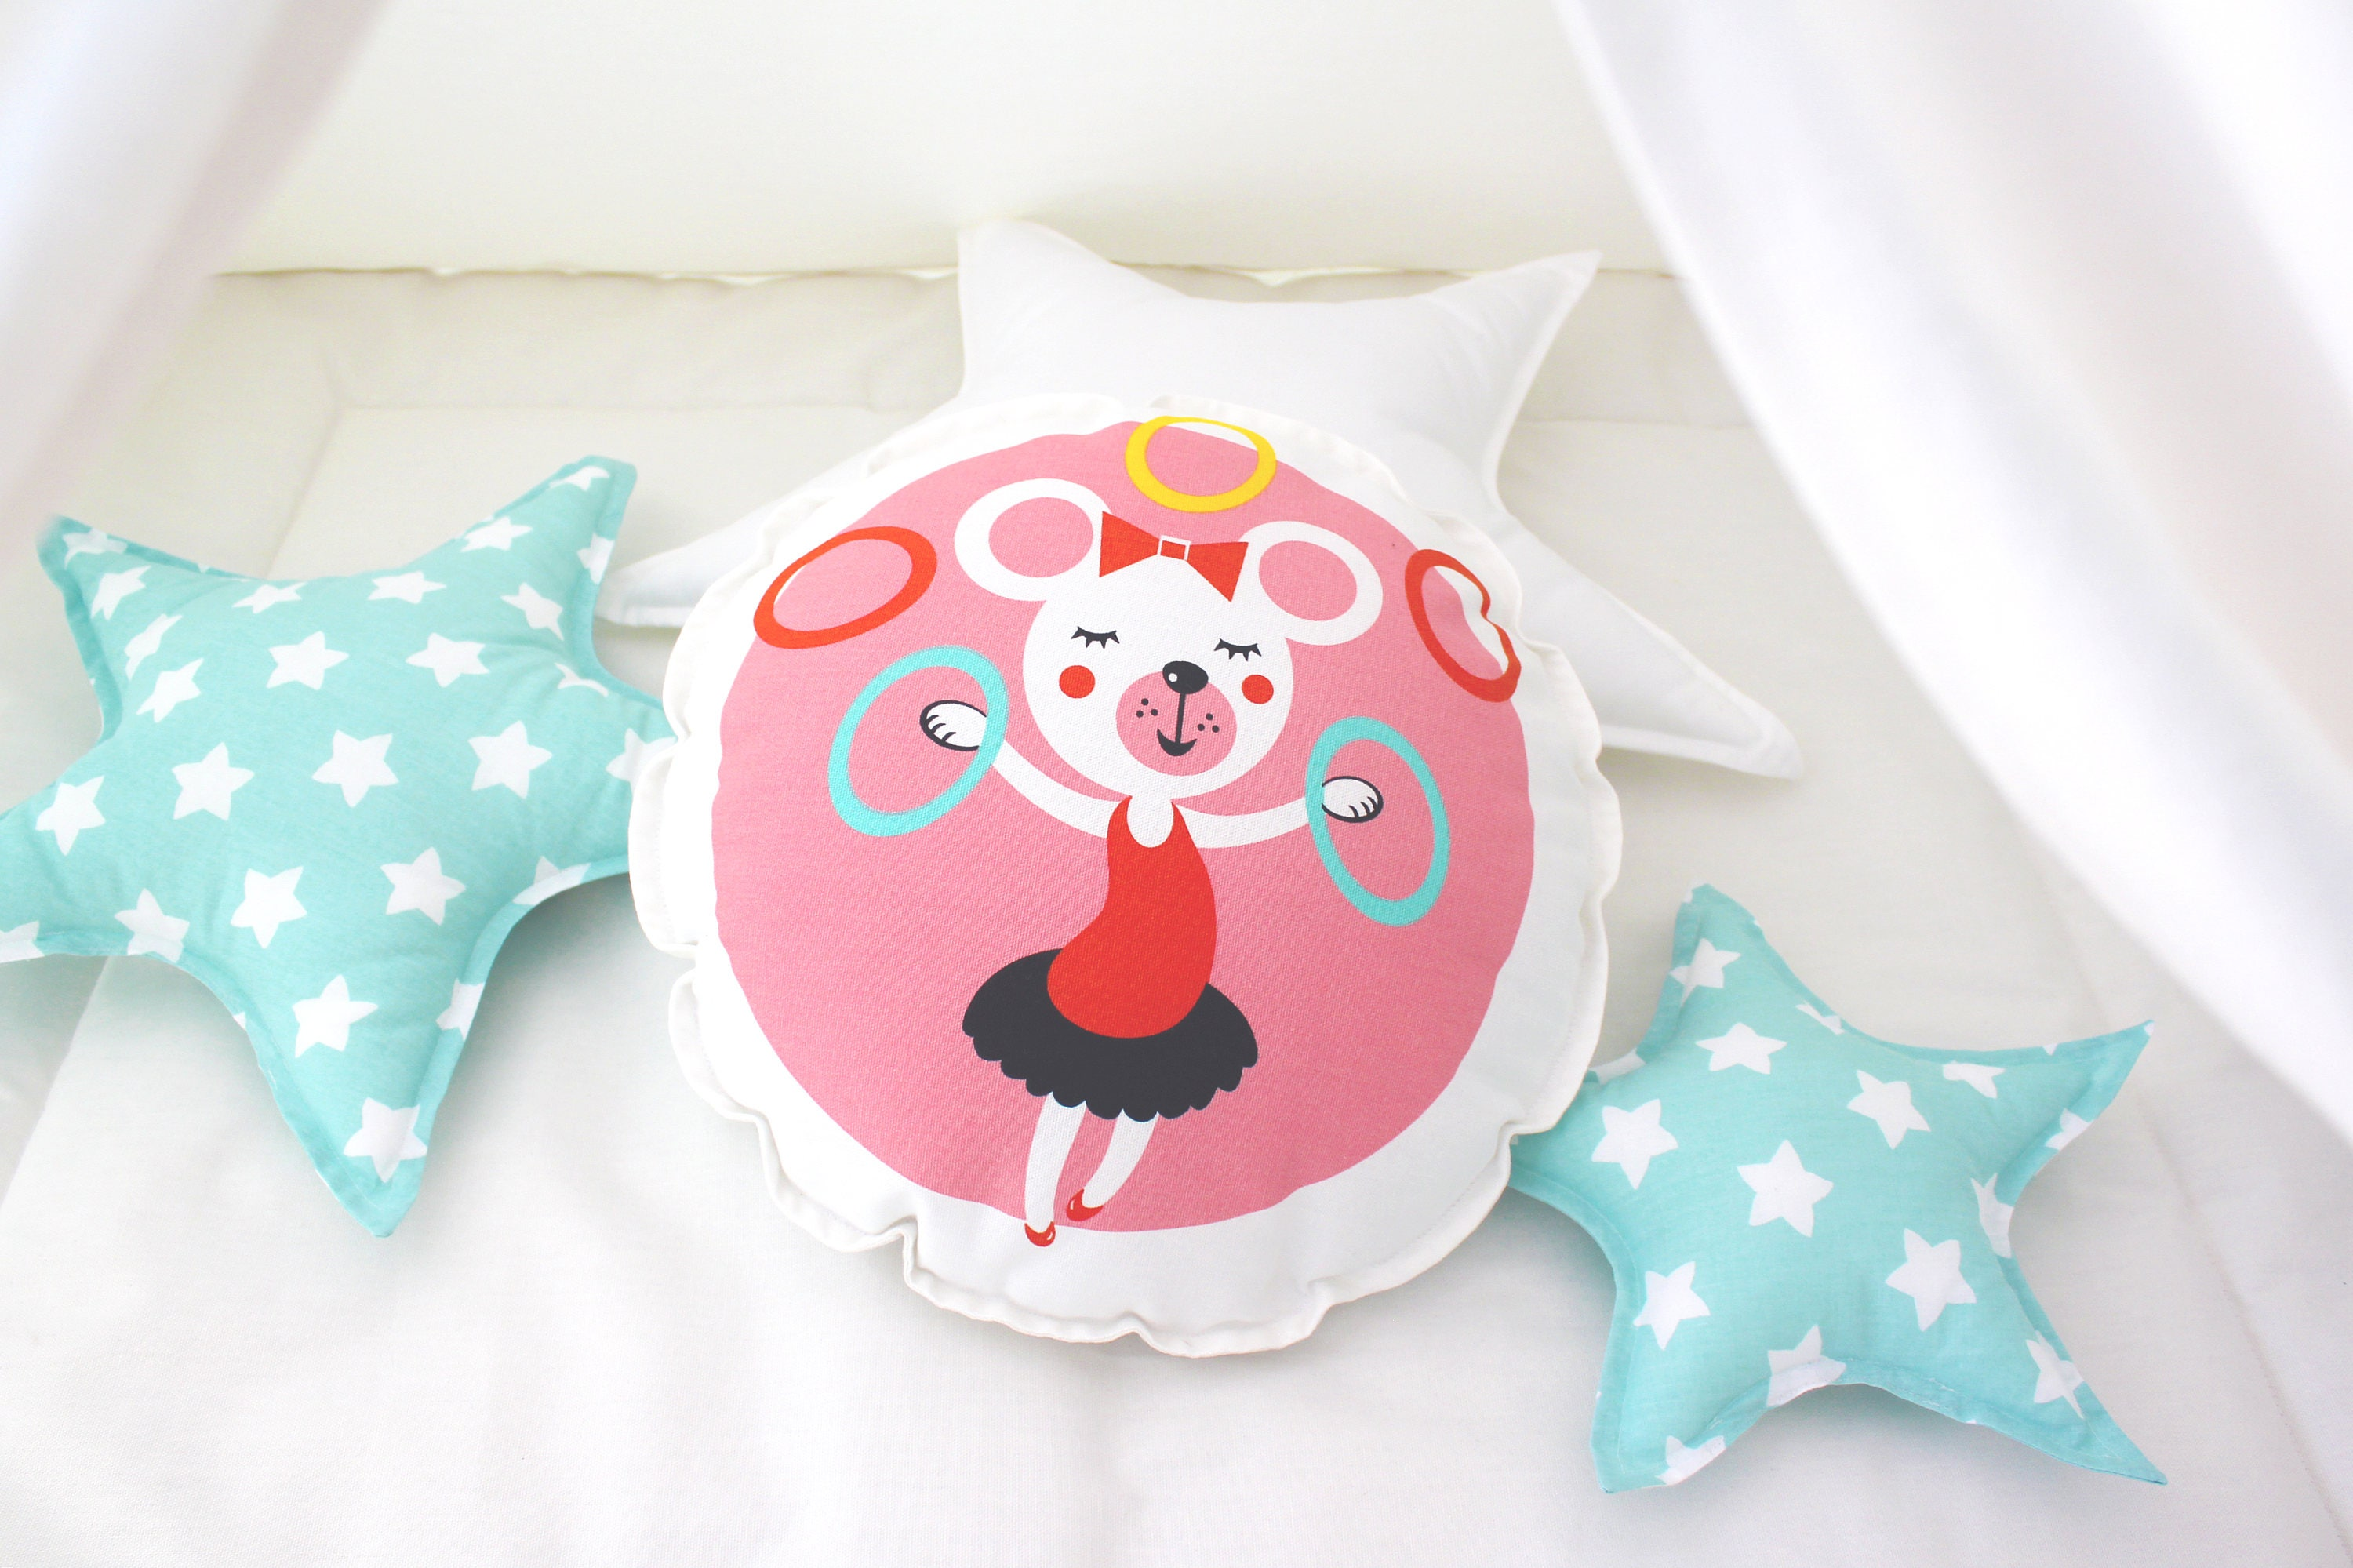 pinterest pillow pom langelier on sara decorative pin design covers kids pillows creative by poms